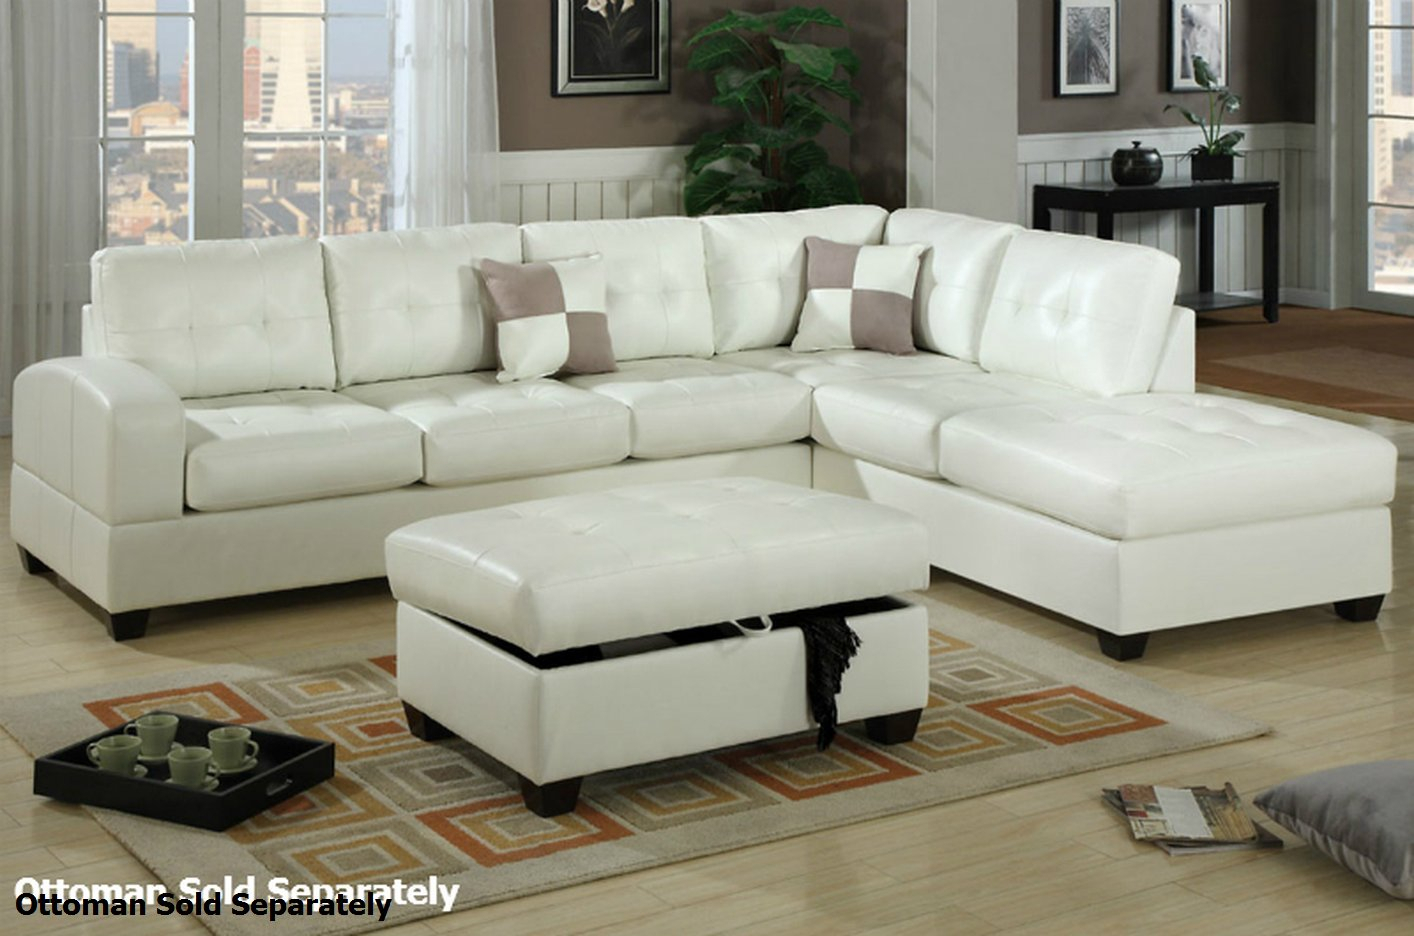 Poundex Reese F7359 White Leather Sectional Sofa – Steal A Within Sectional Sofas In White (View 5 of 15)